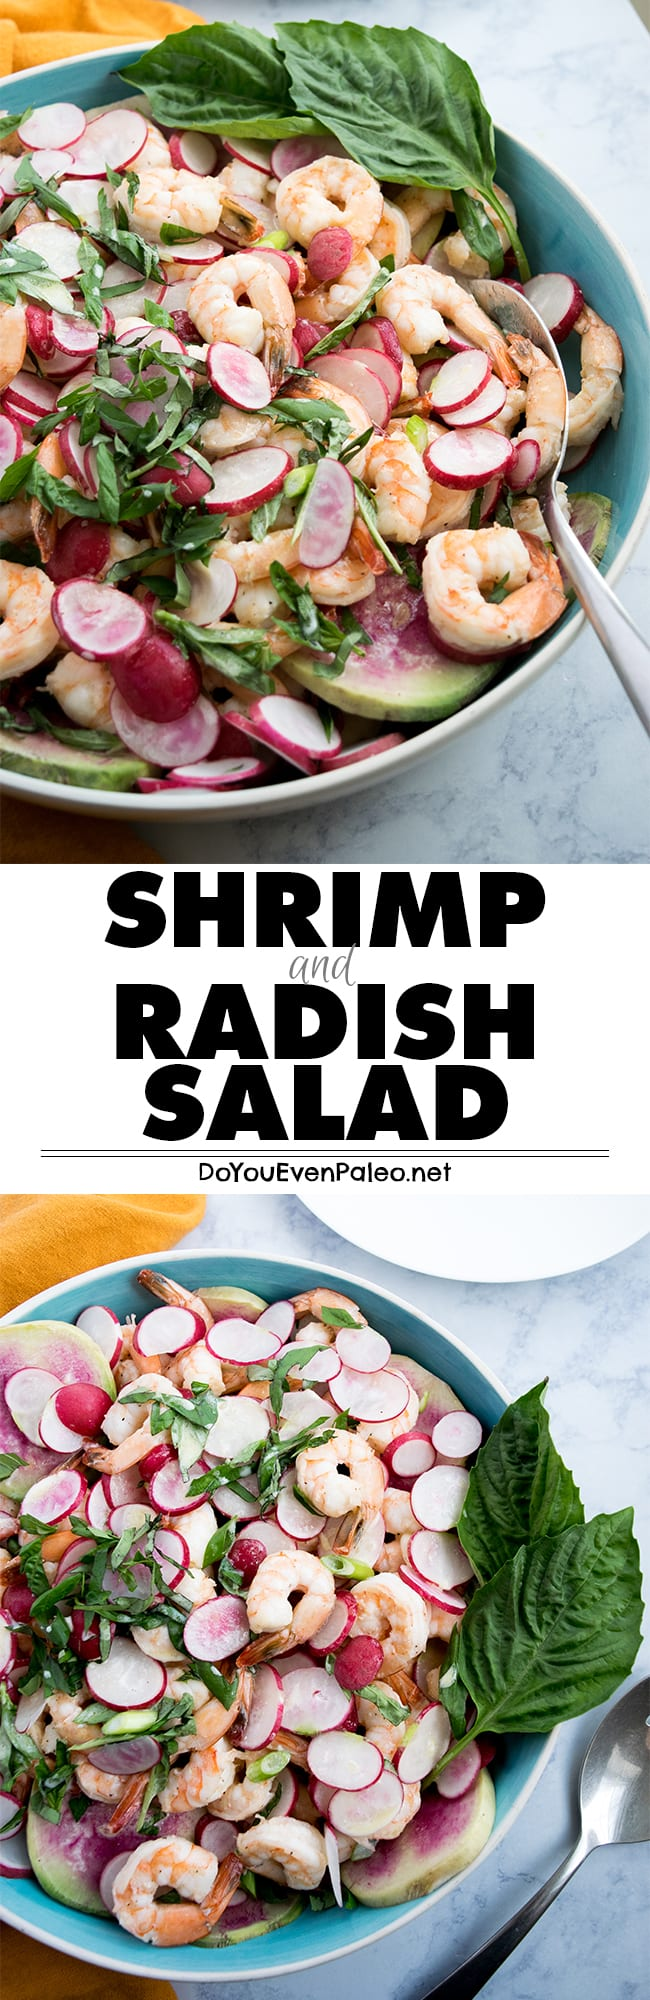 This crunchy and citrusy Shrimp & Radish Salad adds bright color to your table. Gluten free, paleo and whole30-friendly! | DoYouEvenPaleo.net